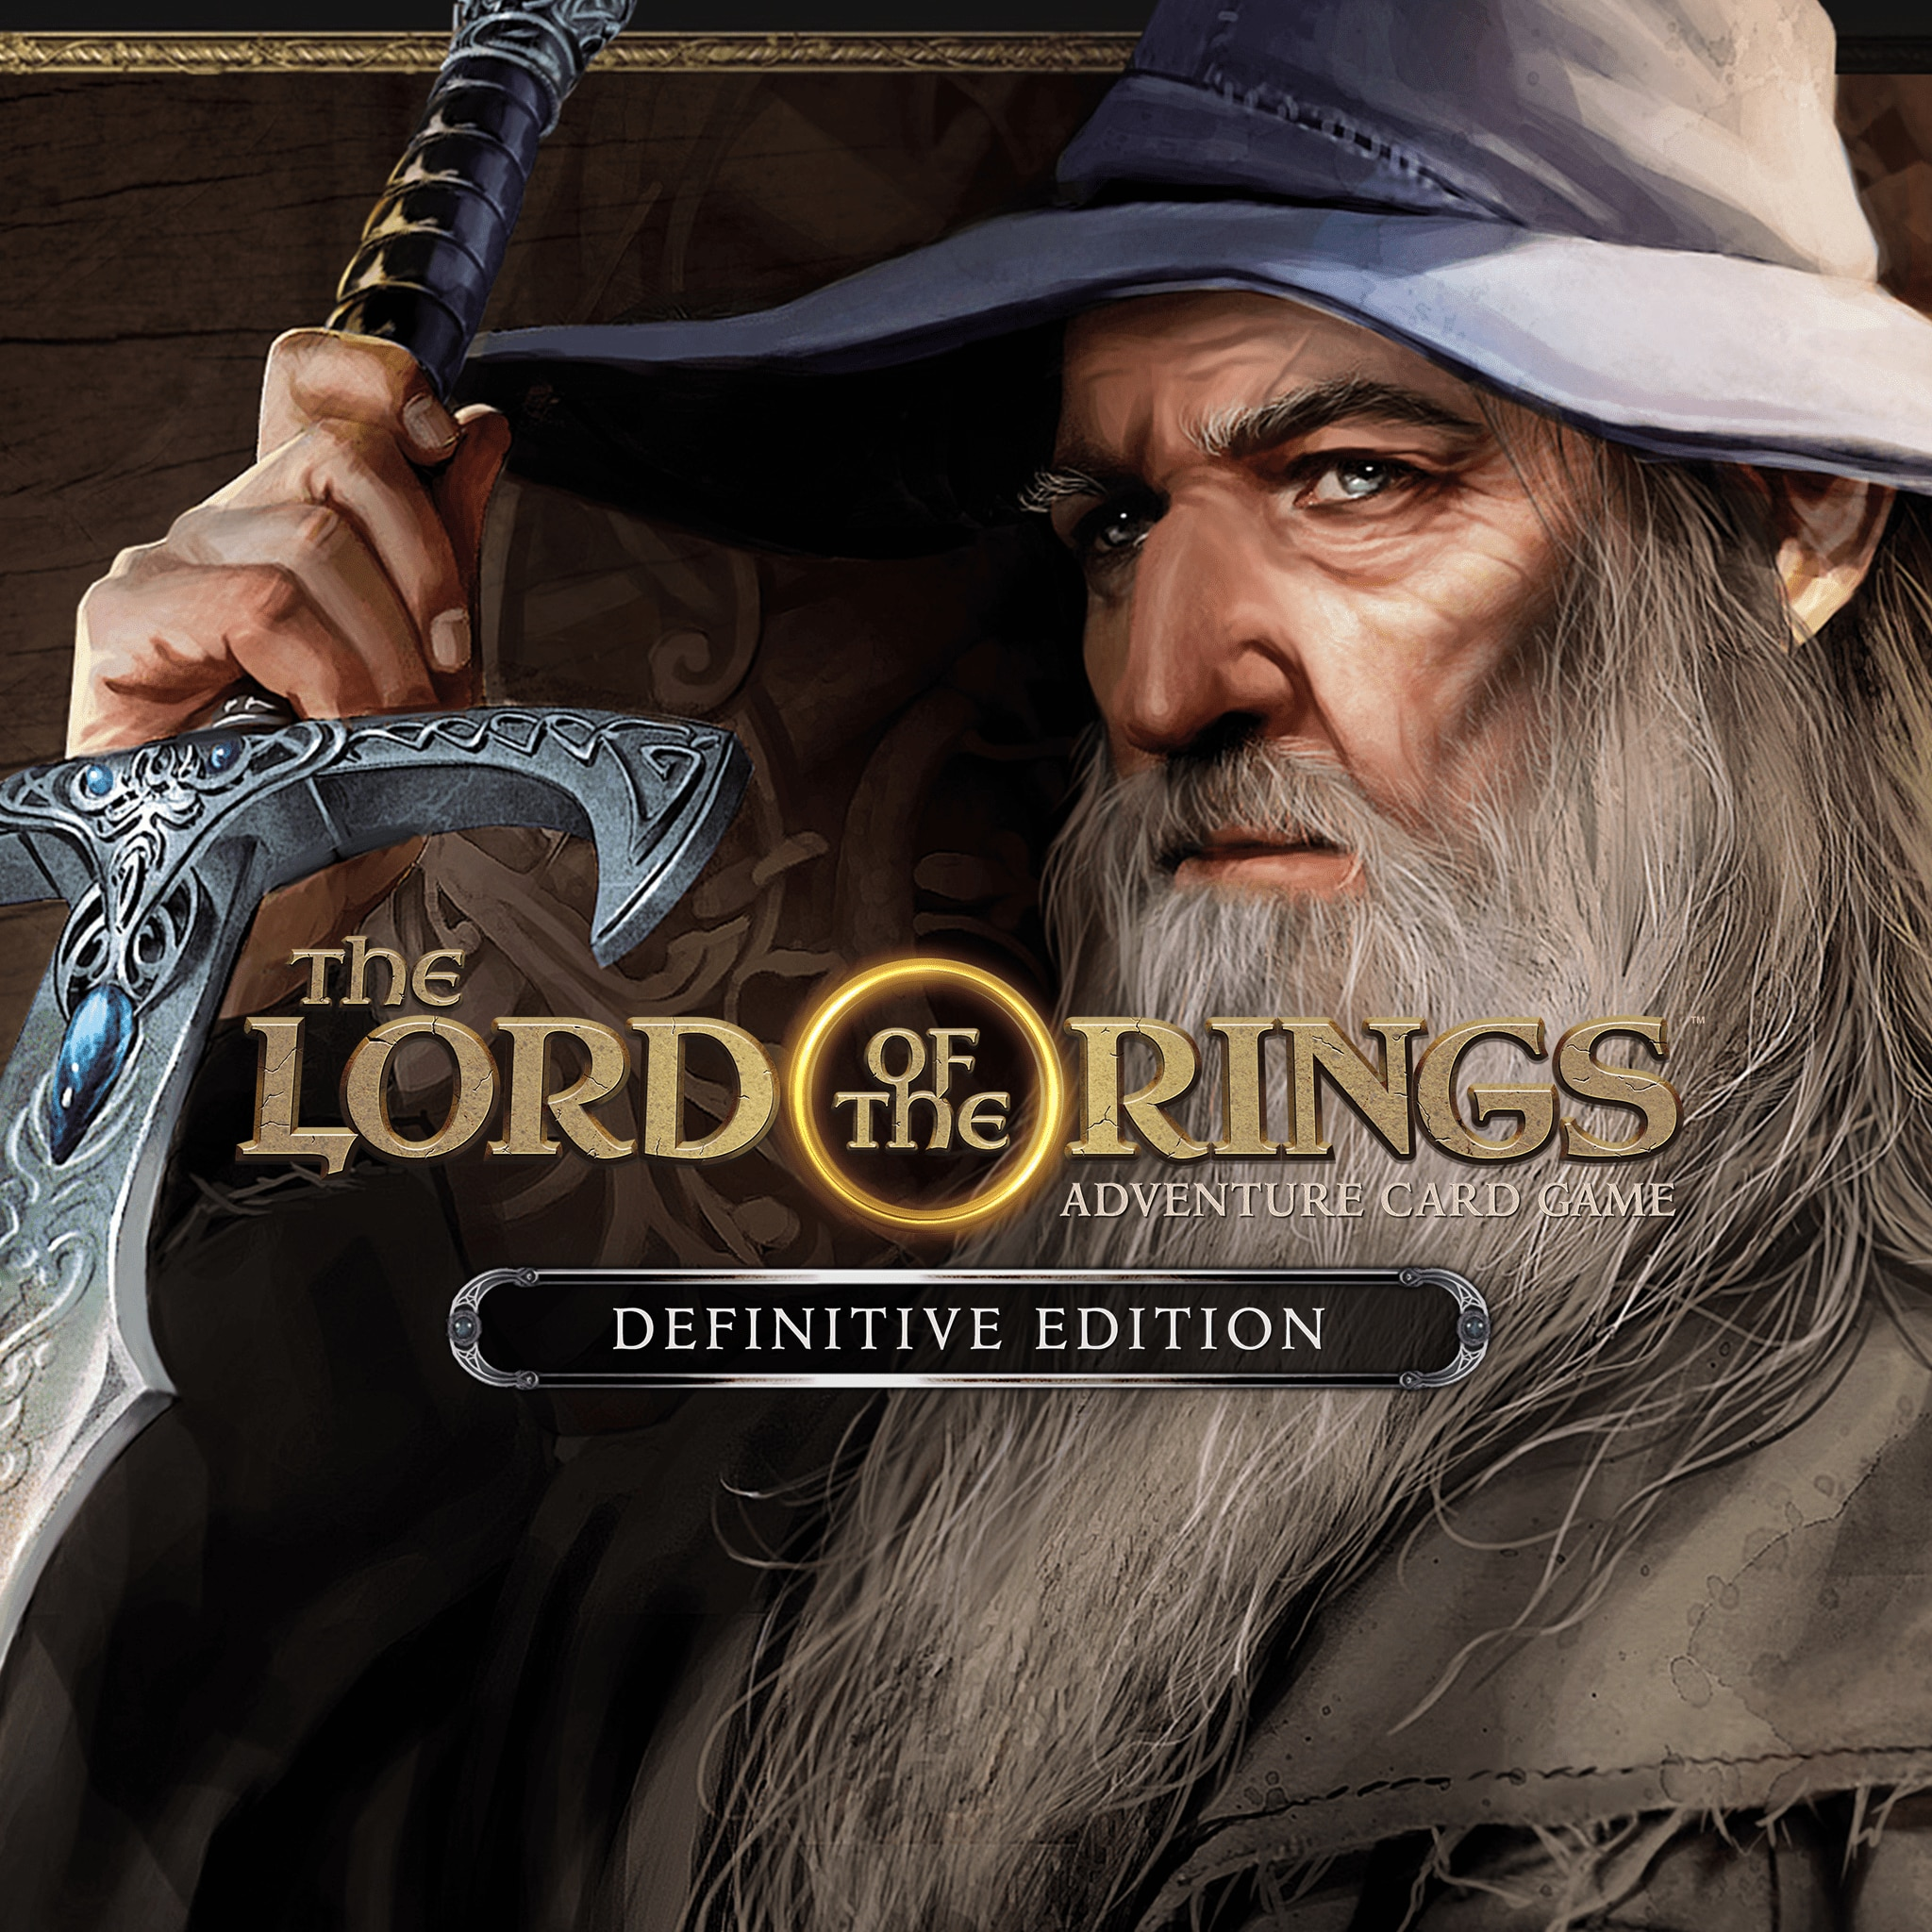 The Lord of the Rings: Adventure Card Game Definitive Edition